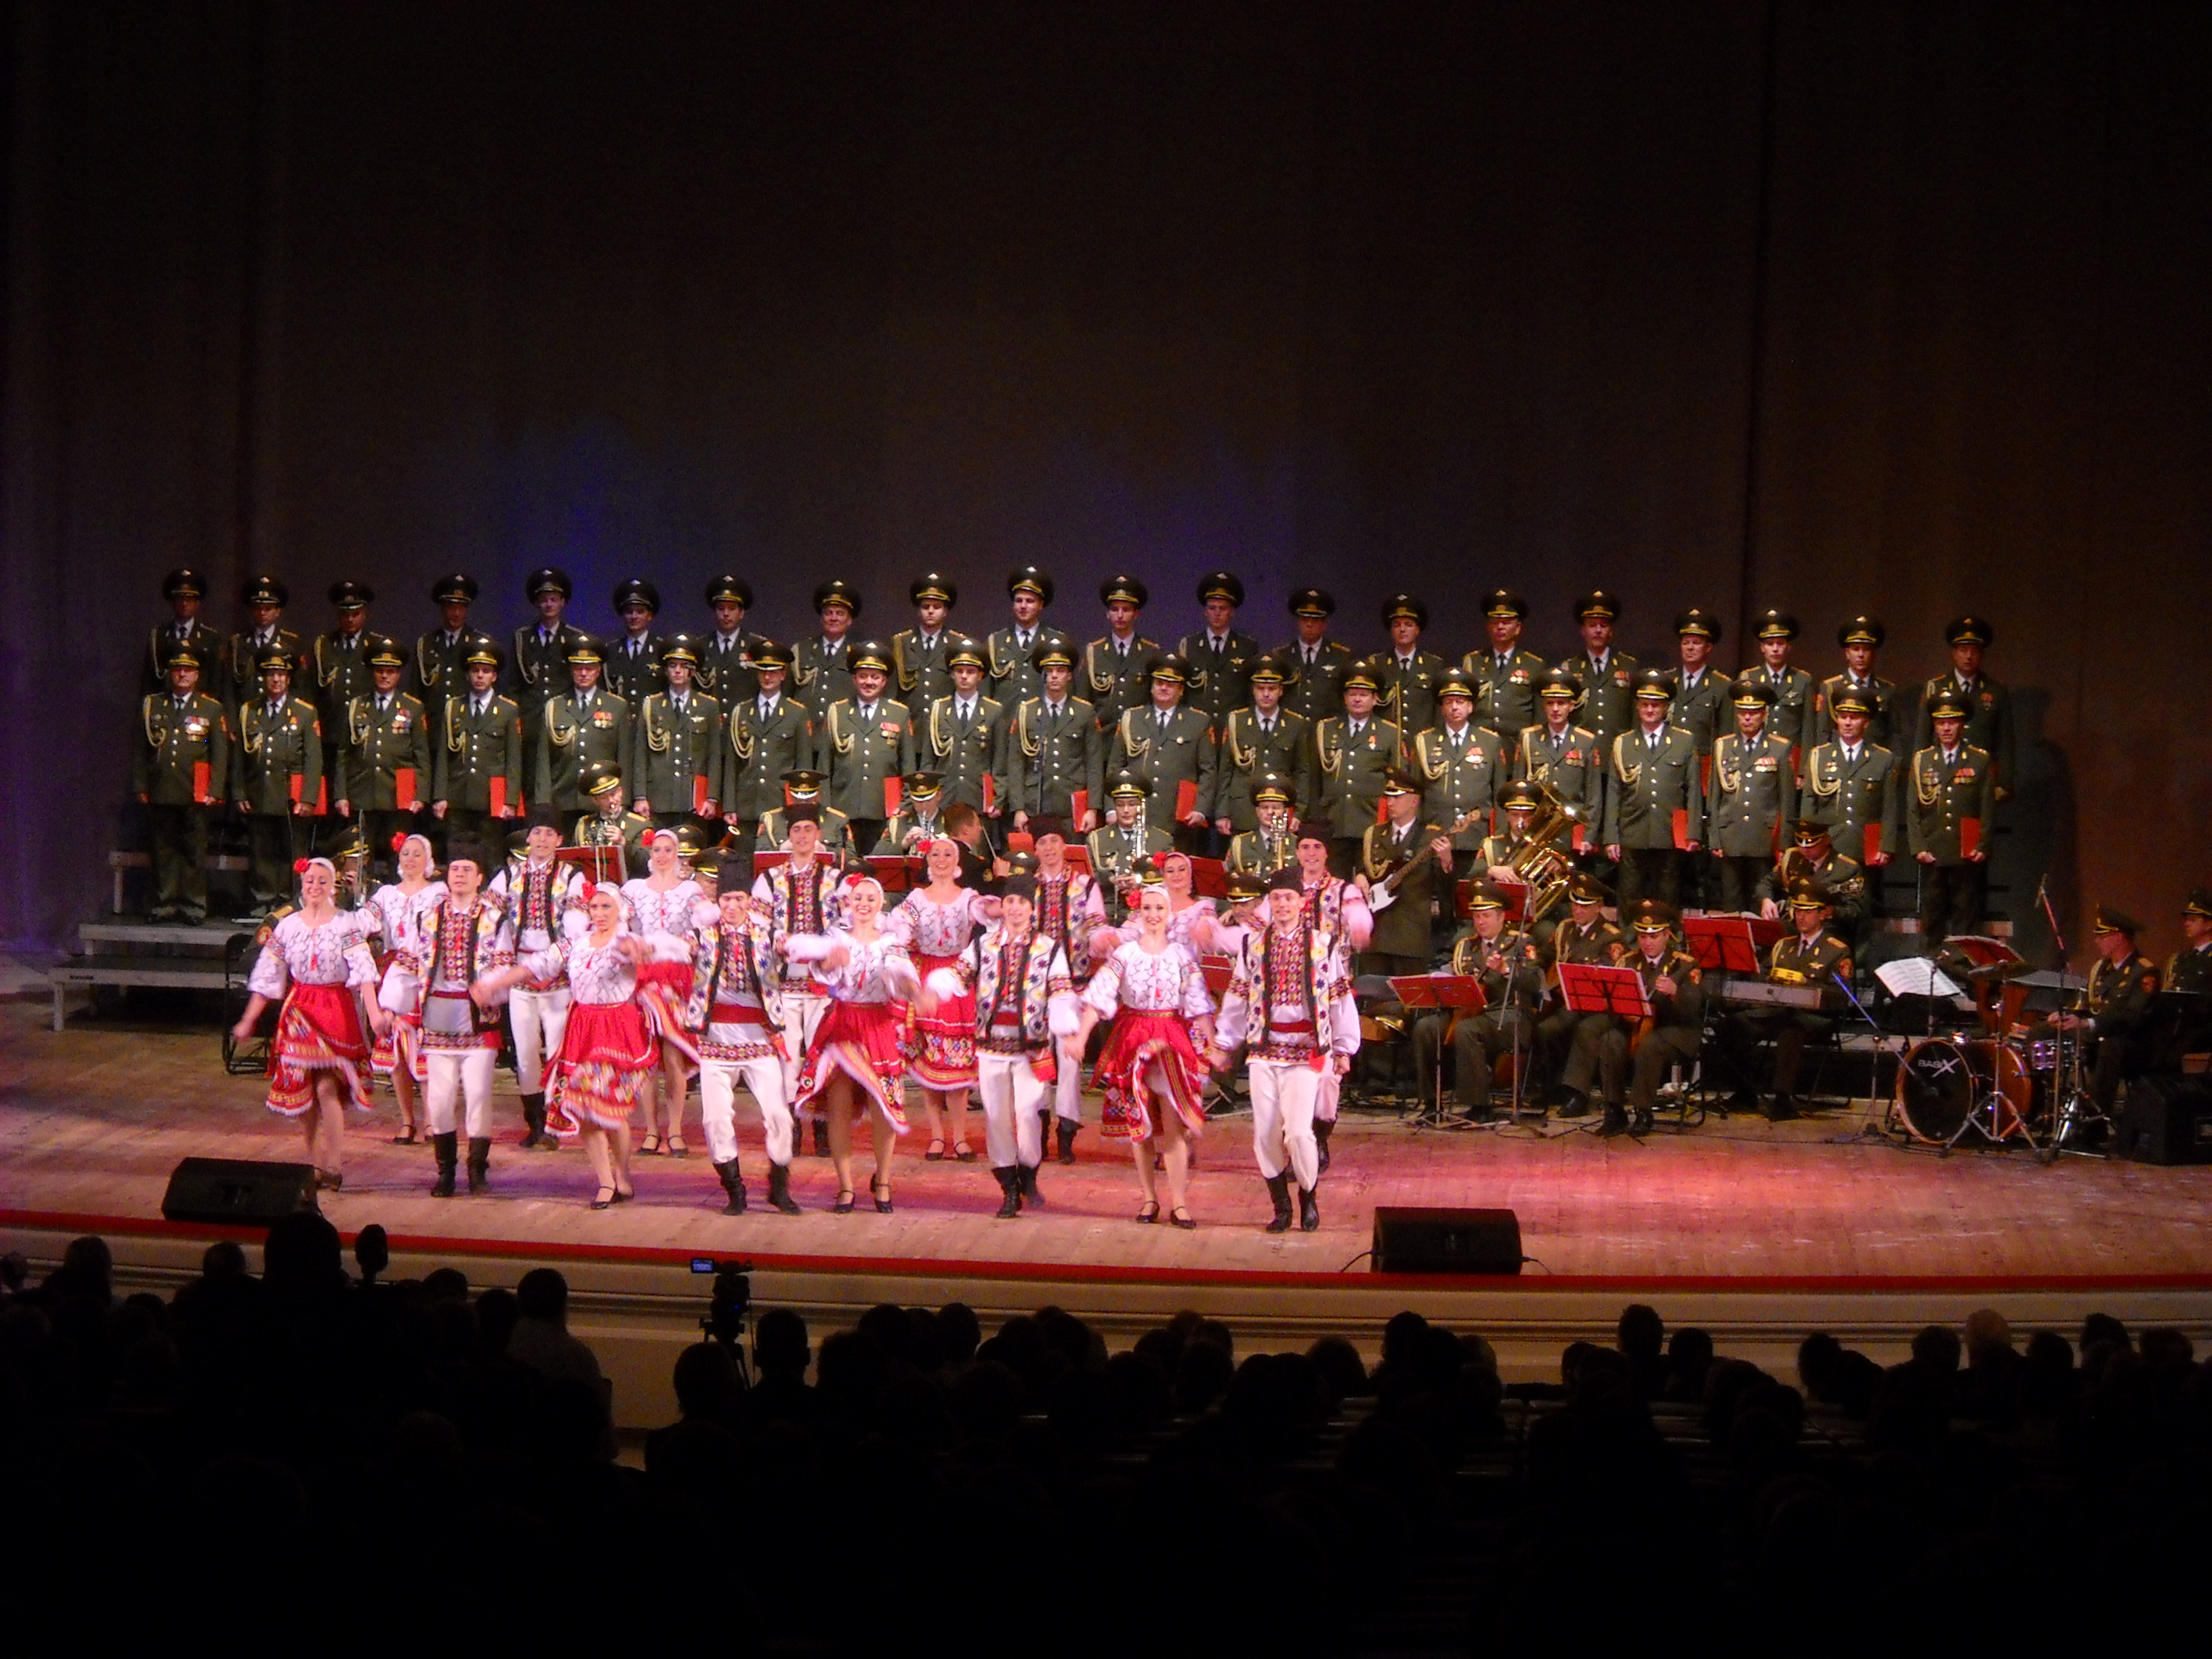 Alexandrov Ensemble - Wikipedia